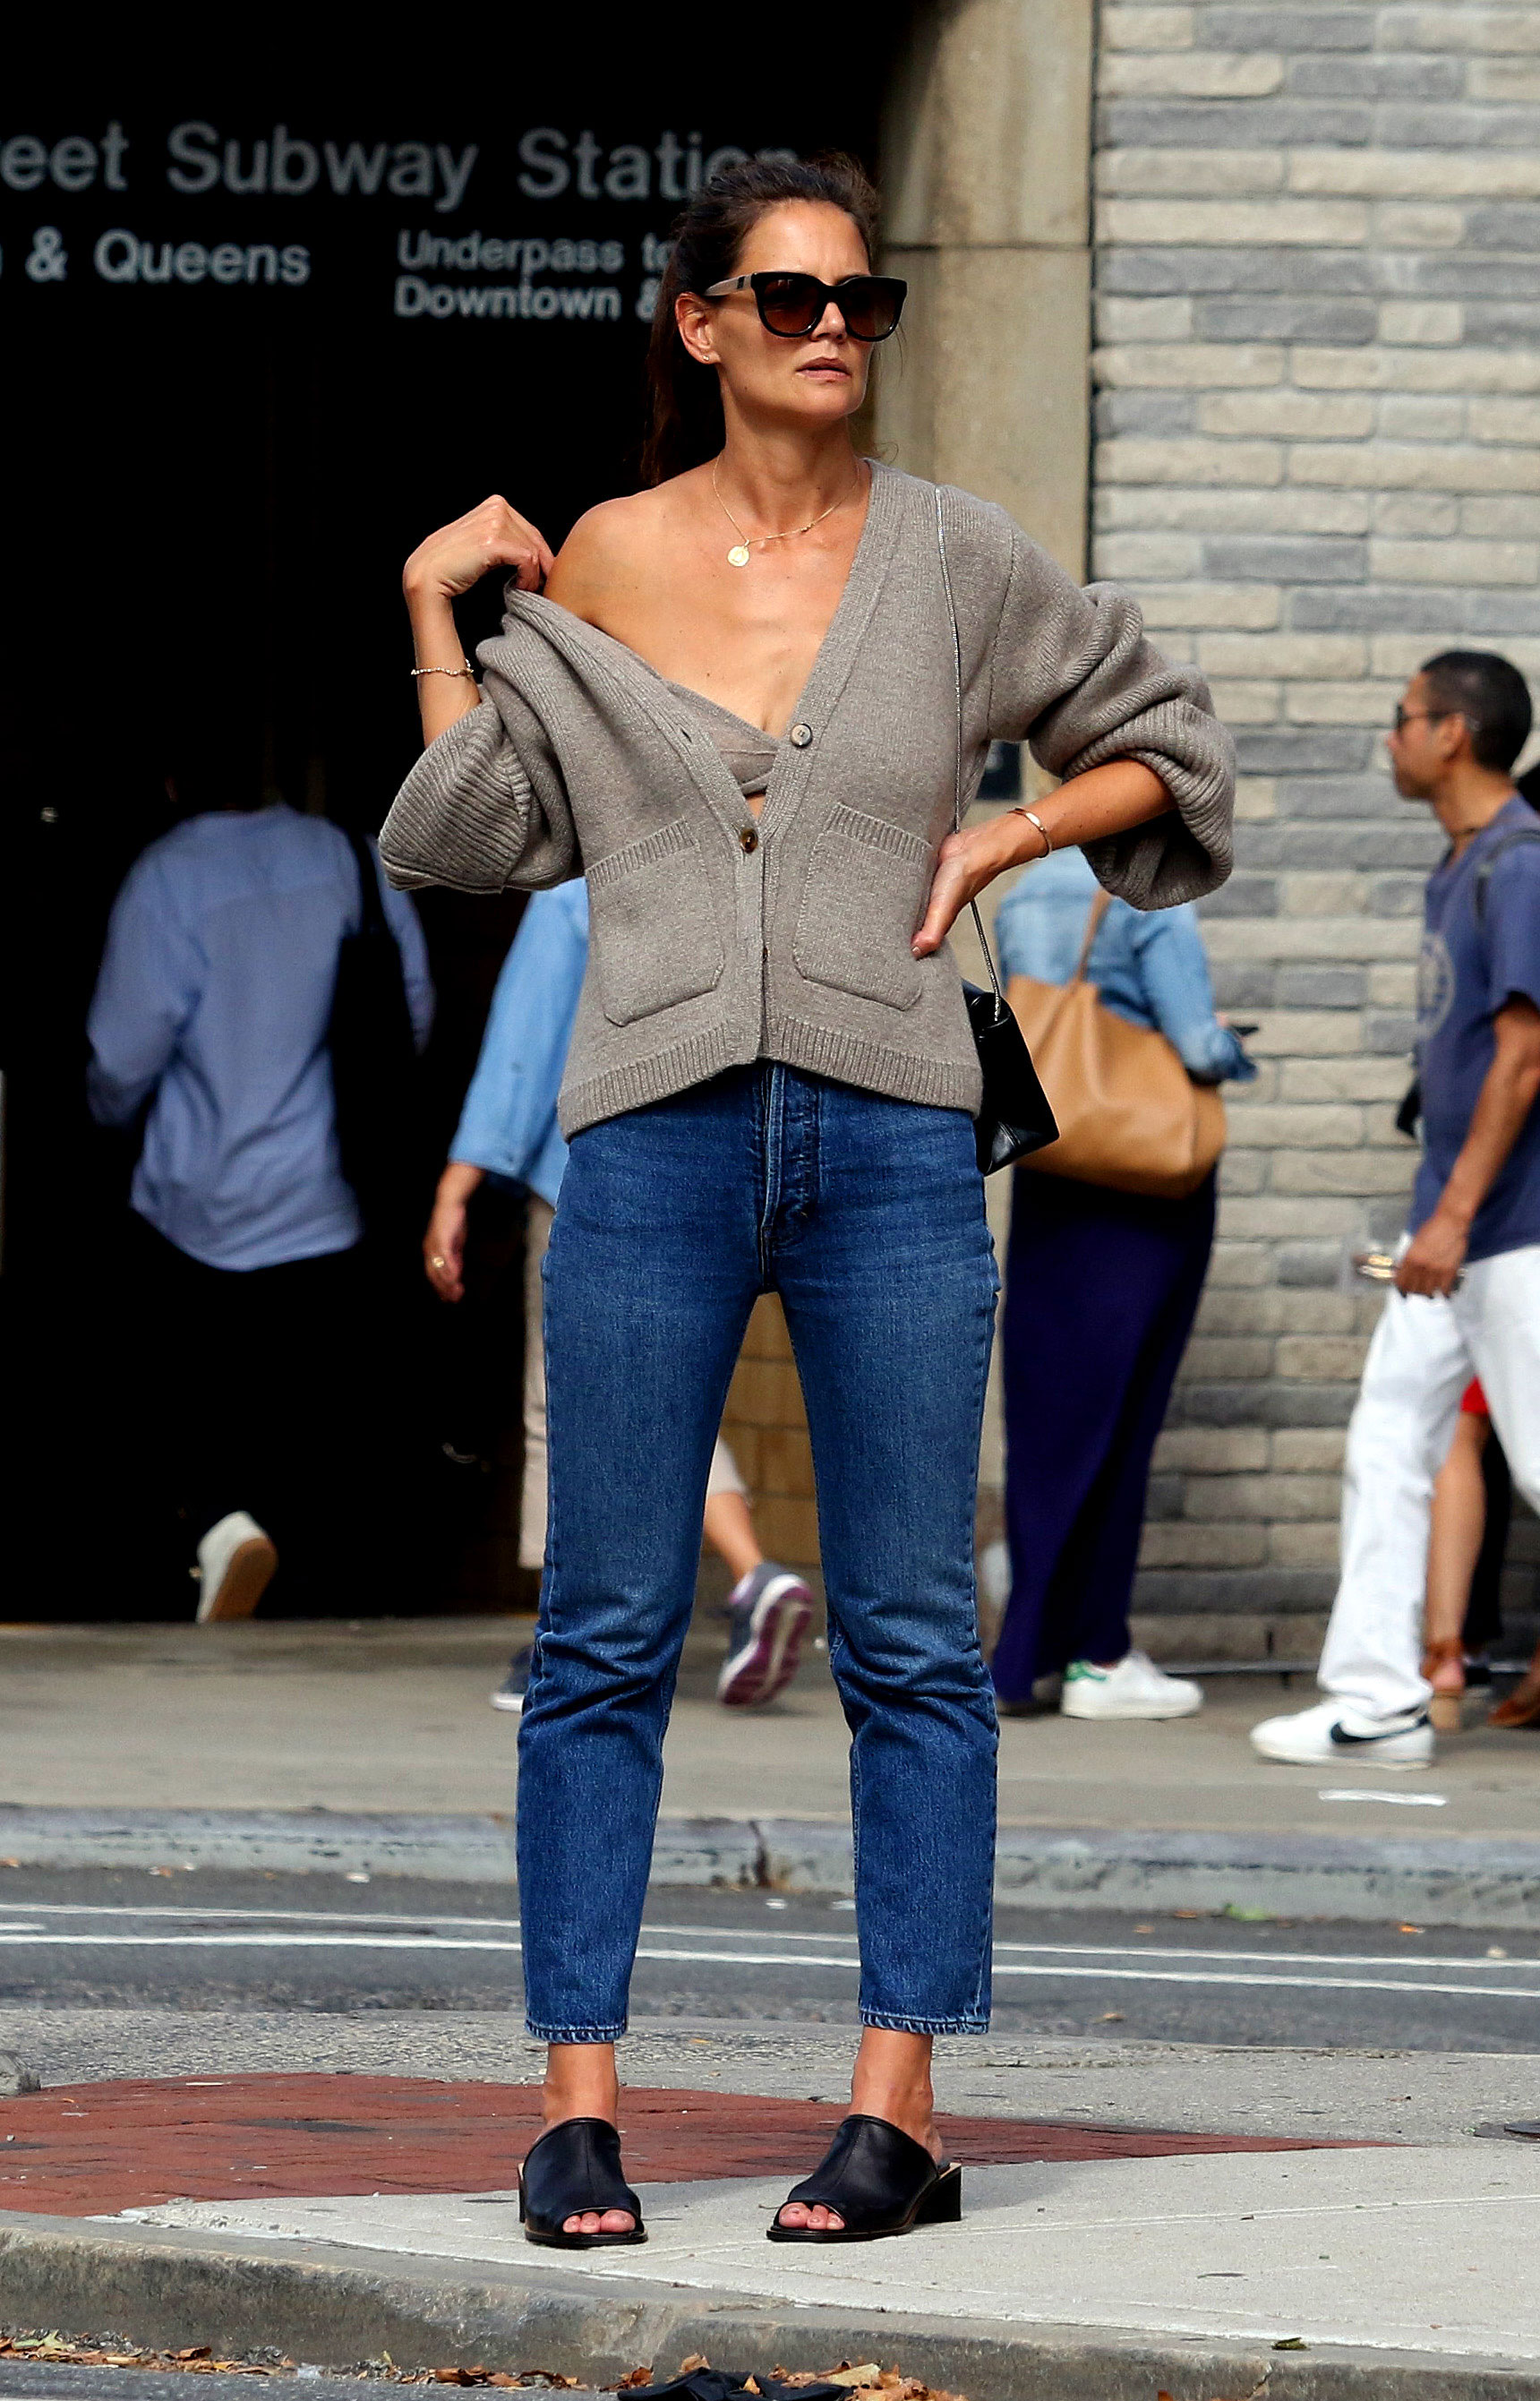 Katie Holmes Wears Revealing Outfit in New York City After Jamie Foxx Split - The actress paired the cardigan with blue jeans, black sandals and dark shades.